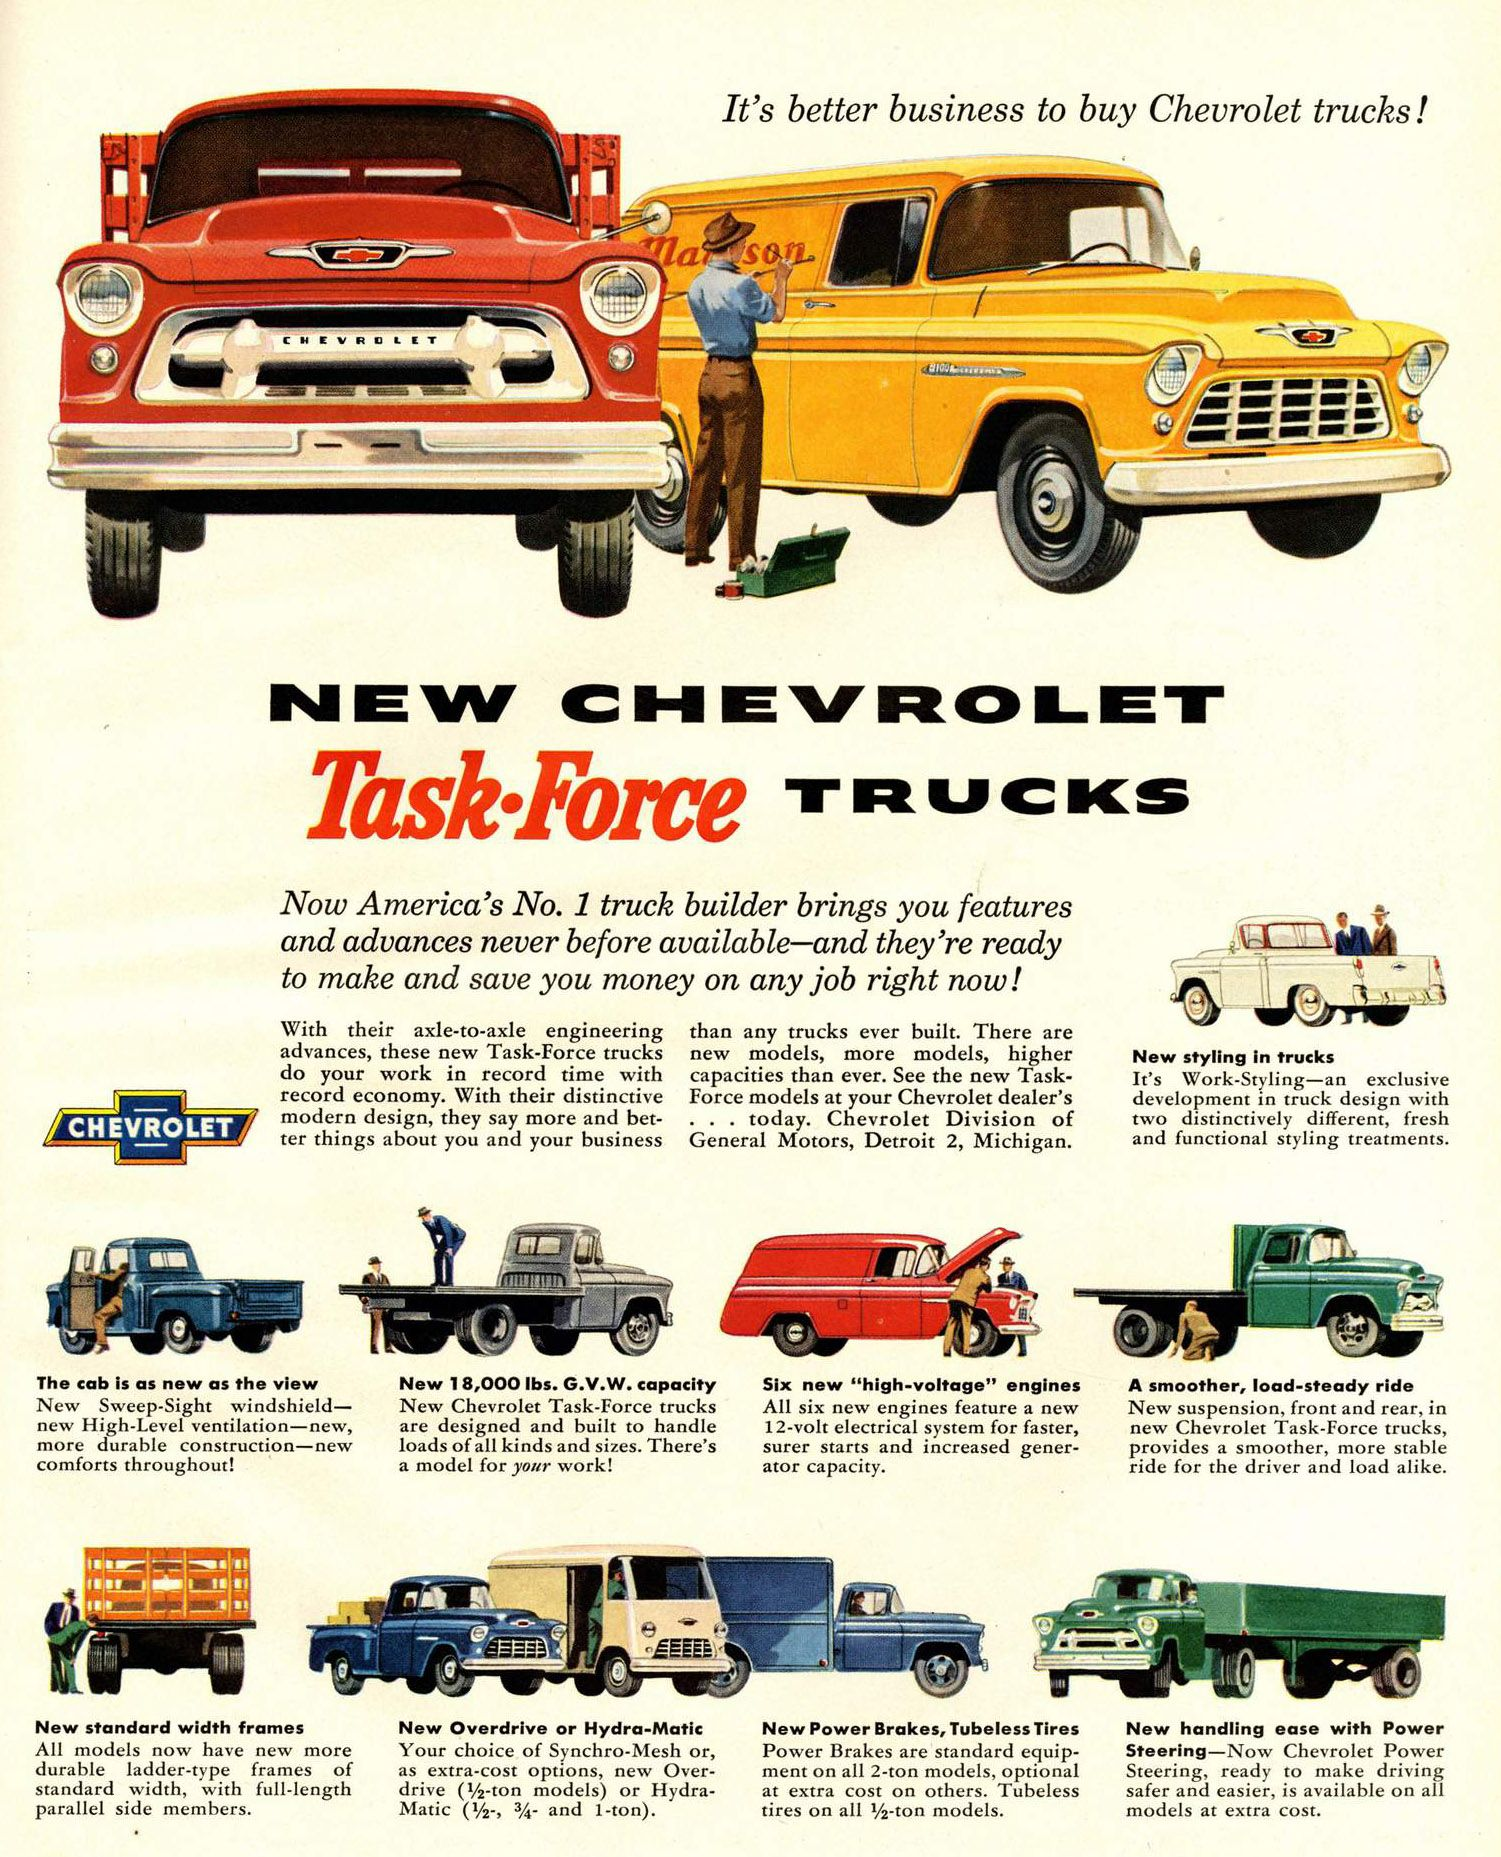 1955 chevrolet task force trucks